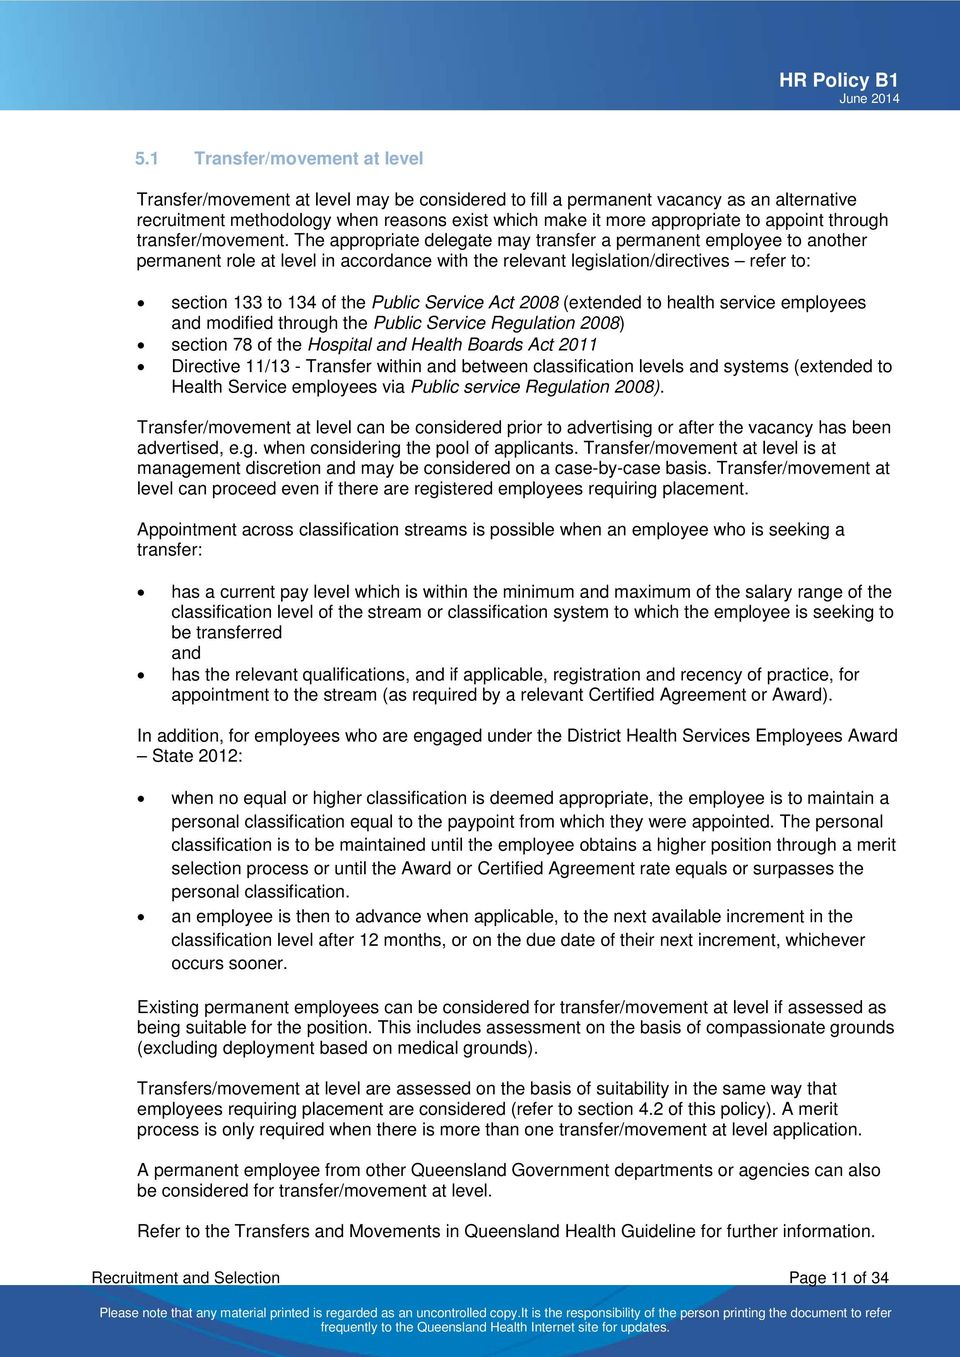 Human Resources Policy - PDF